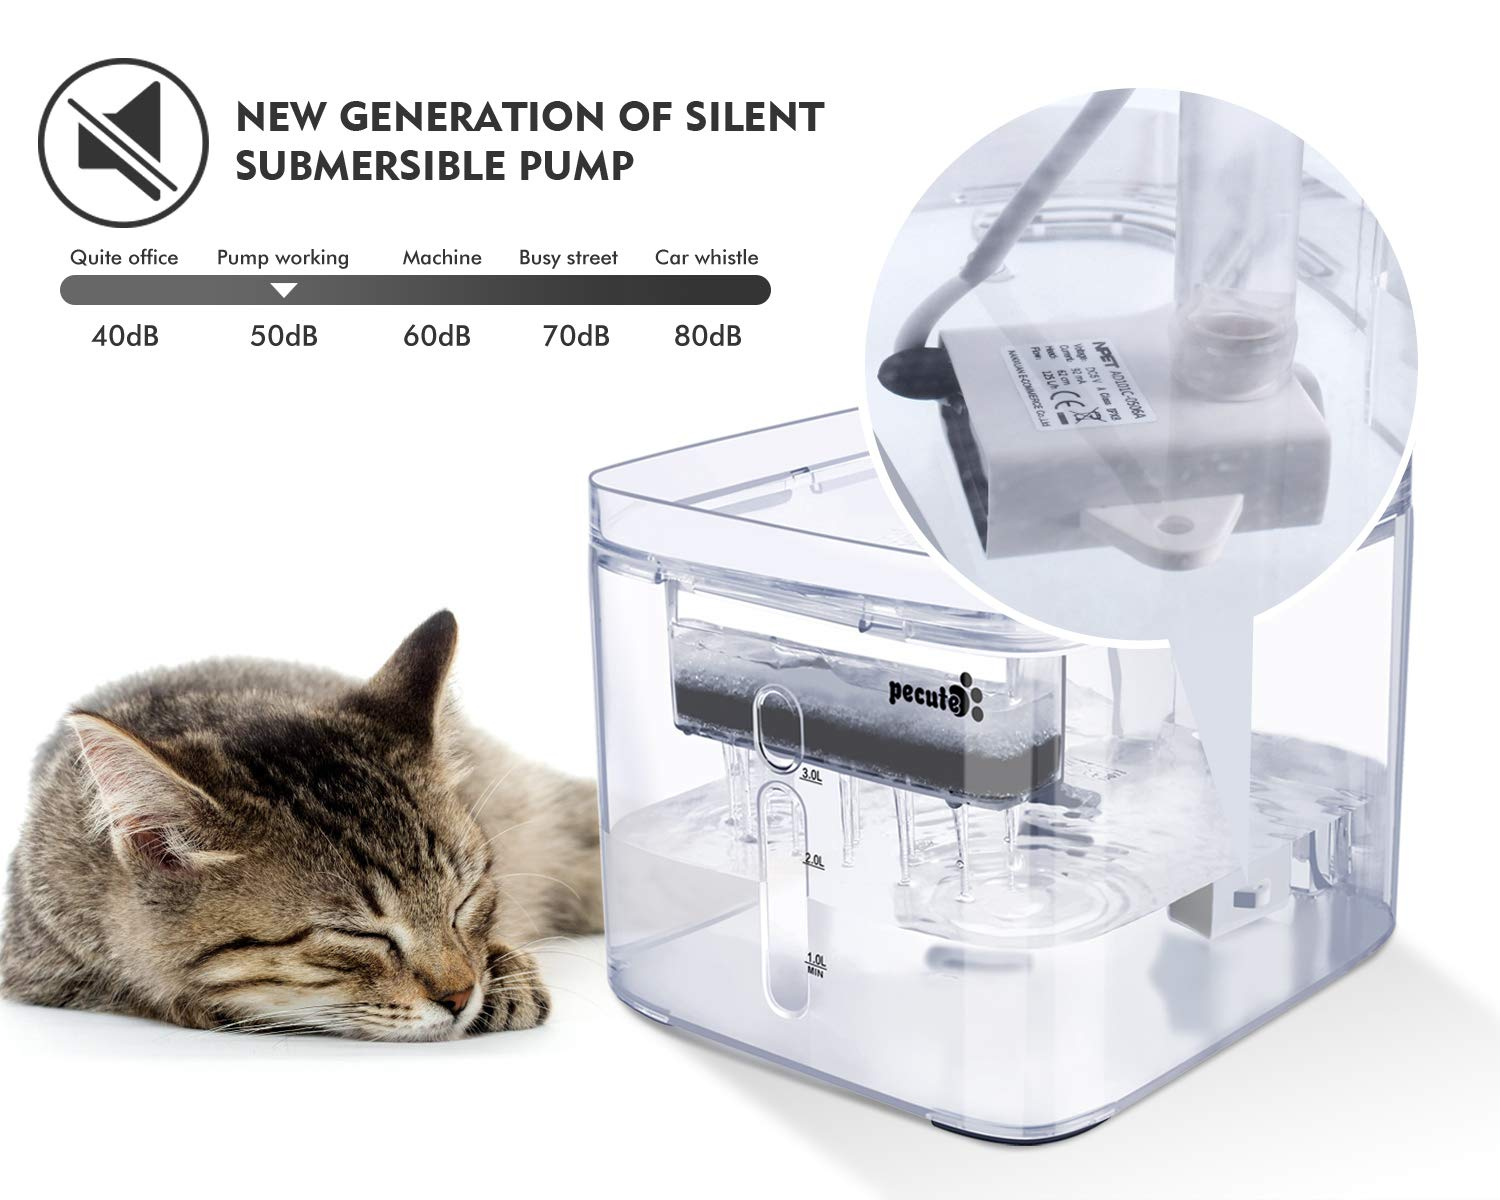 Pecute Cat Water Fountain, 3L/3 Outlet Mode Automatic Pet Water Fountain Transparent Design Dog Water Dispenser with 2 Reusable Filter for Cats, Dogs, Multiple Pets